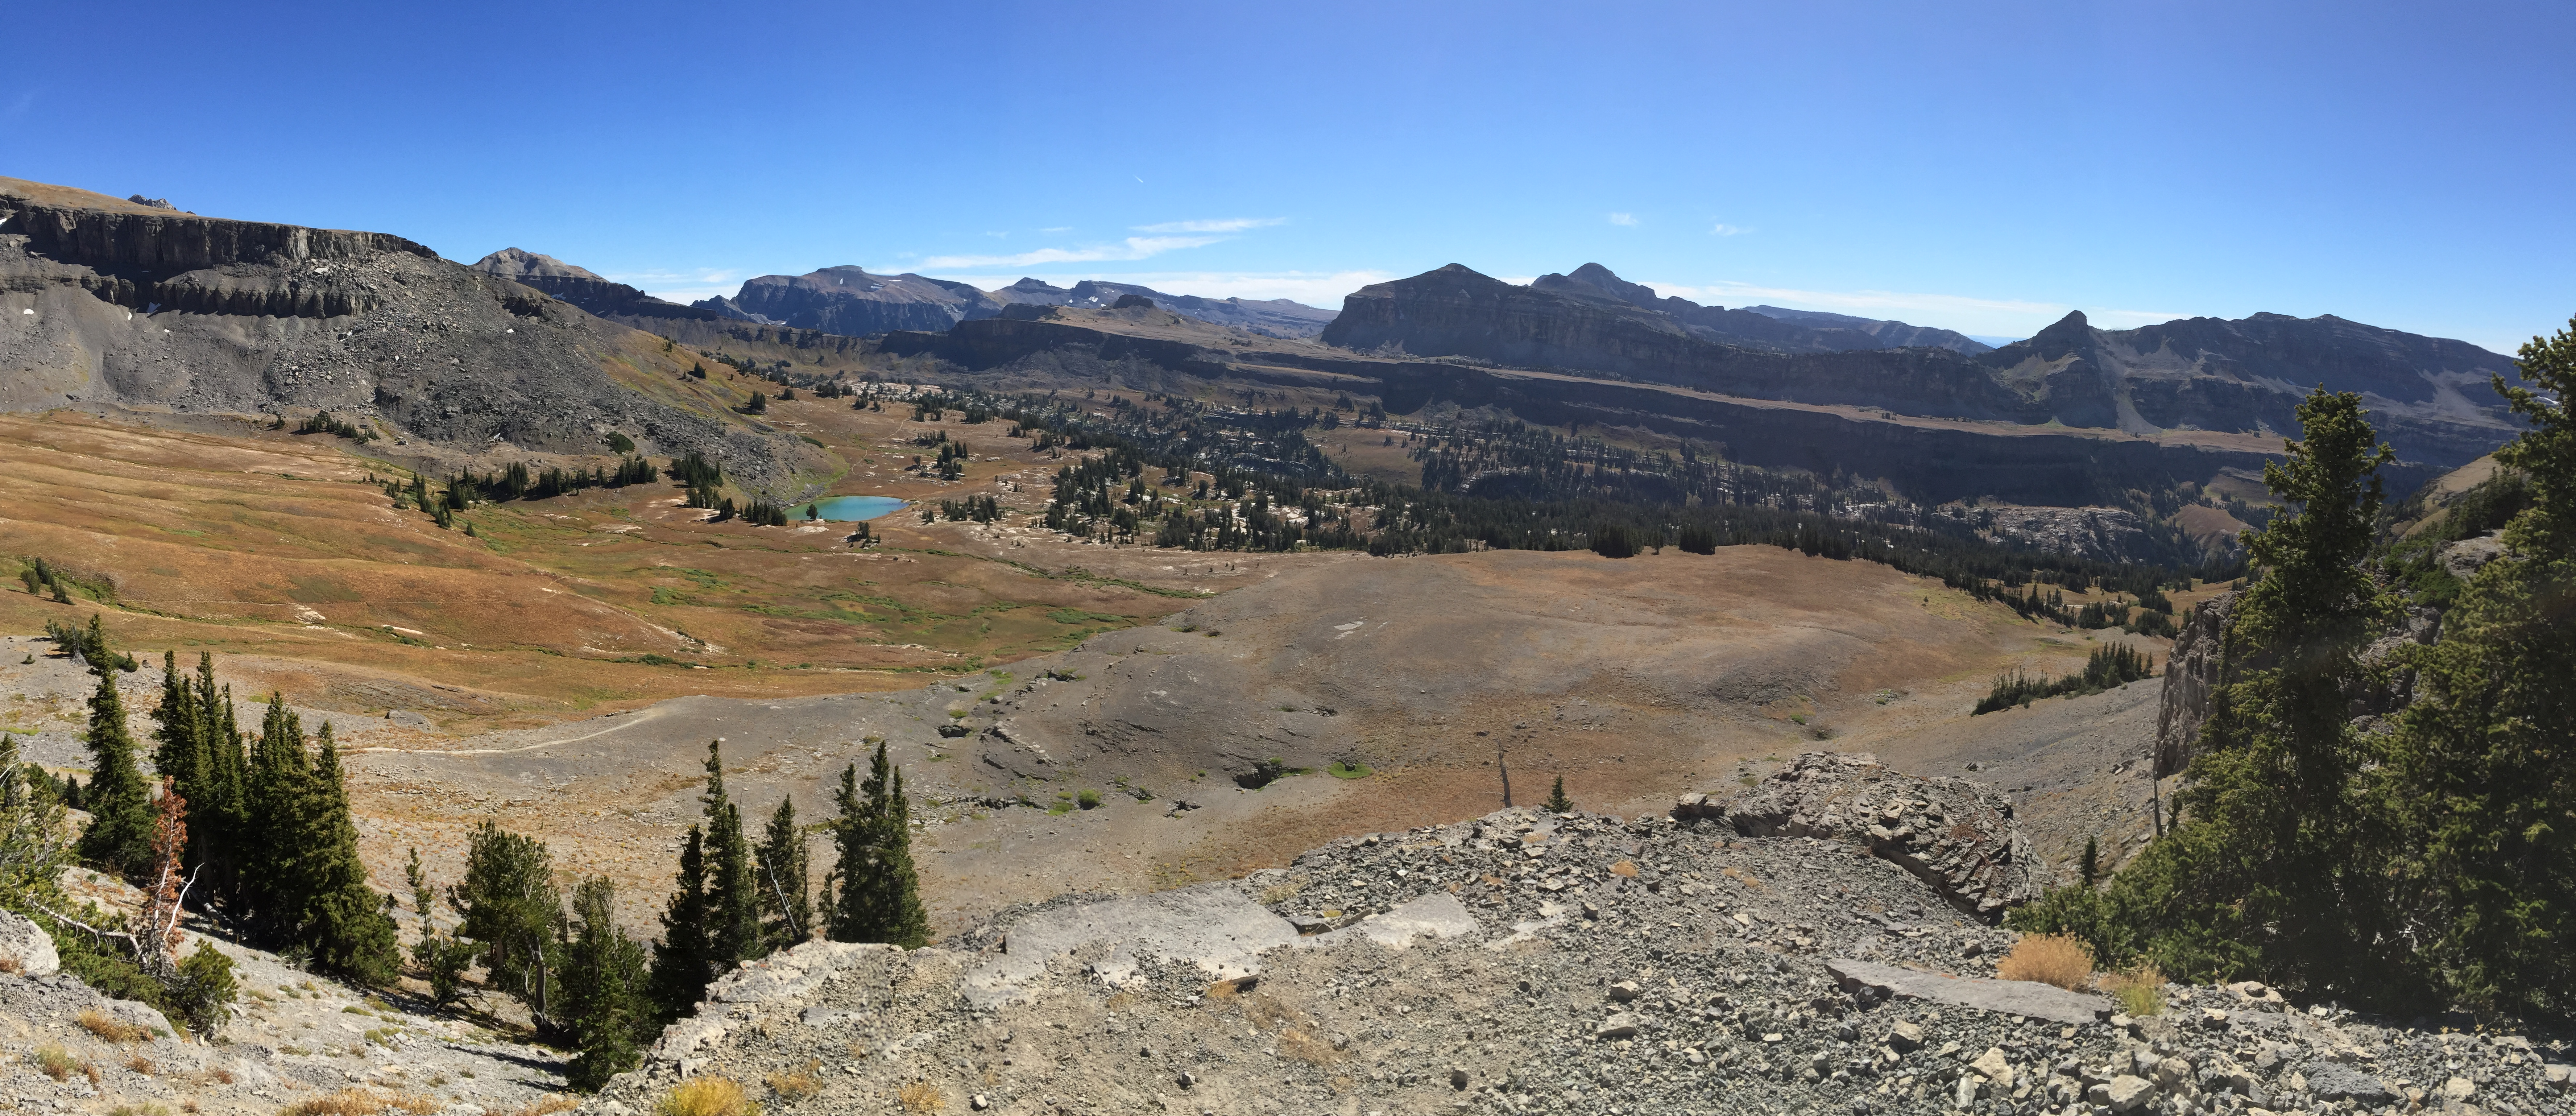 Teton Crest Trail - Looking south across Alaska Basin